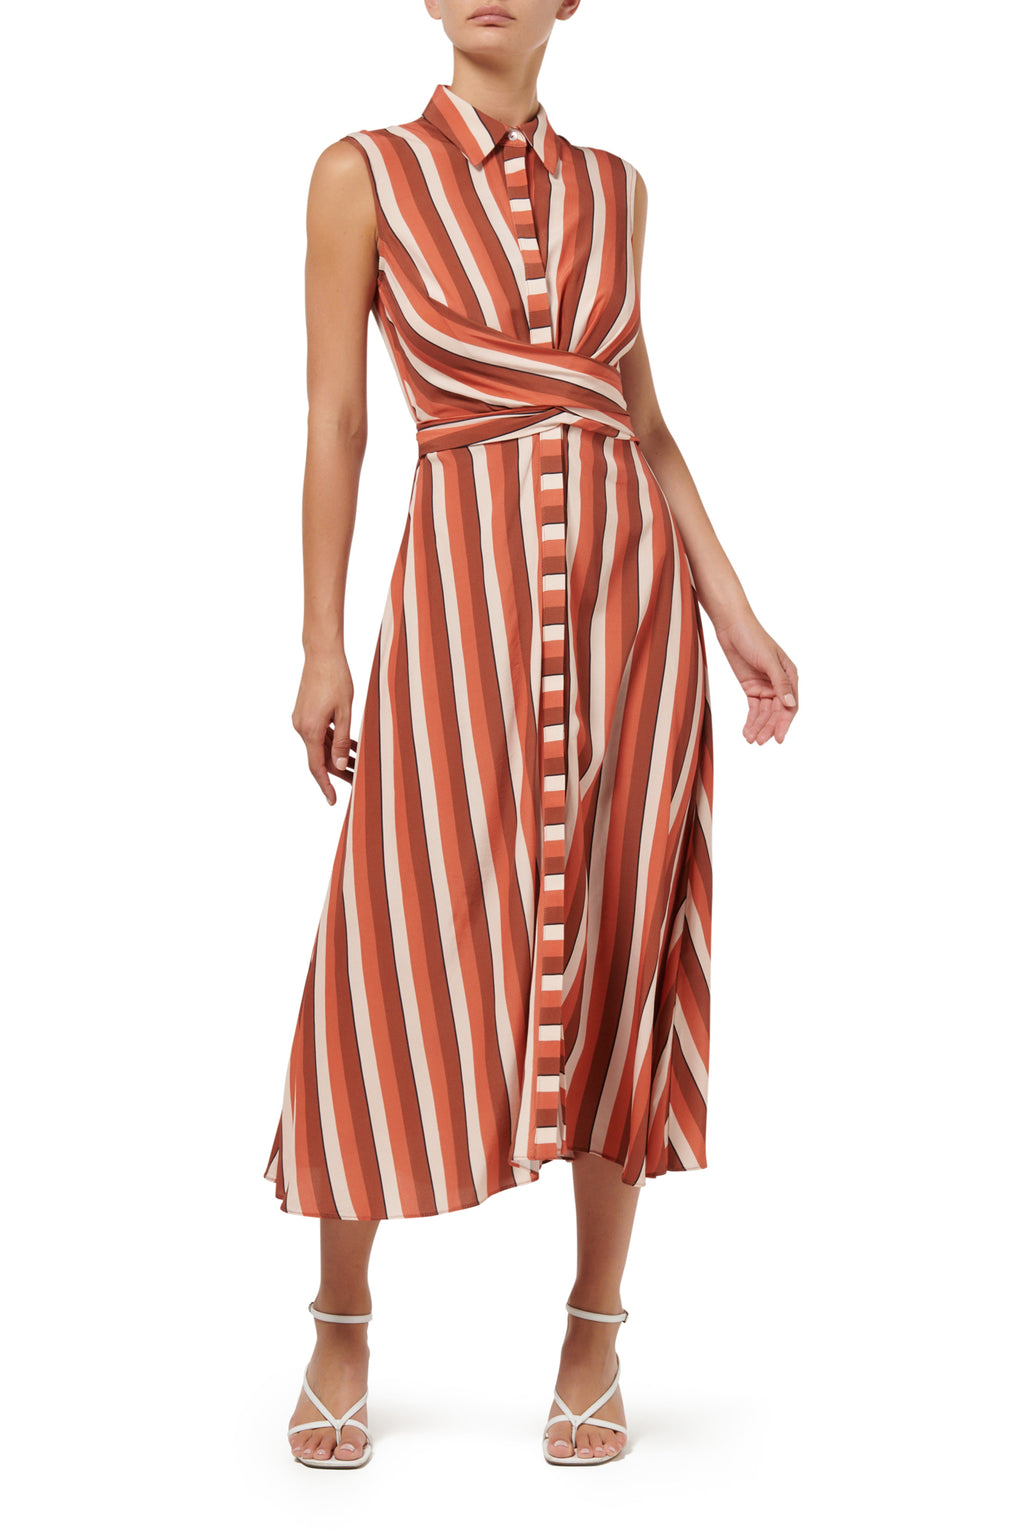 Calypso Sleeveless Shirt Dress - Peach Stripe - PRE ORDER